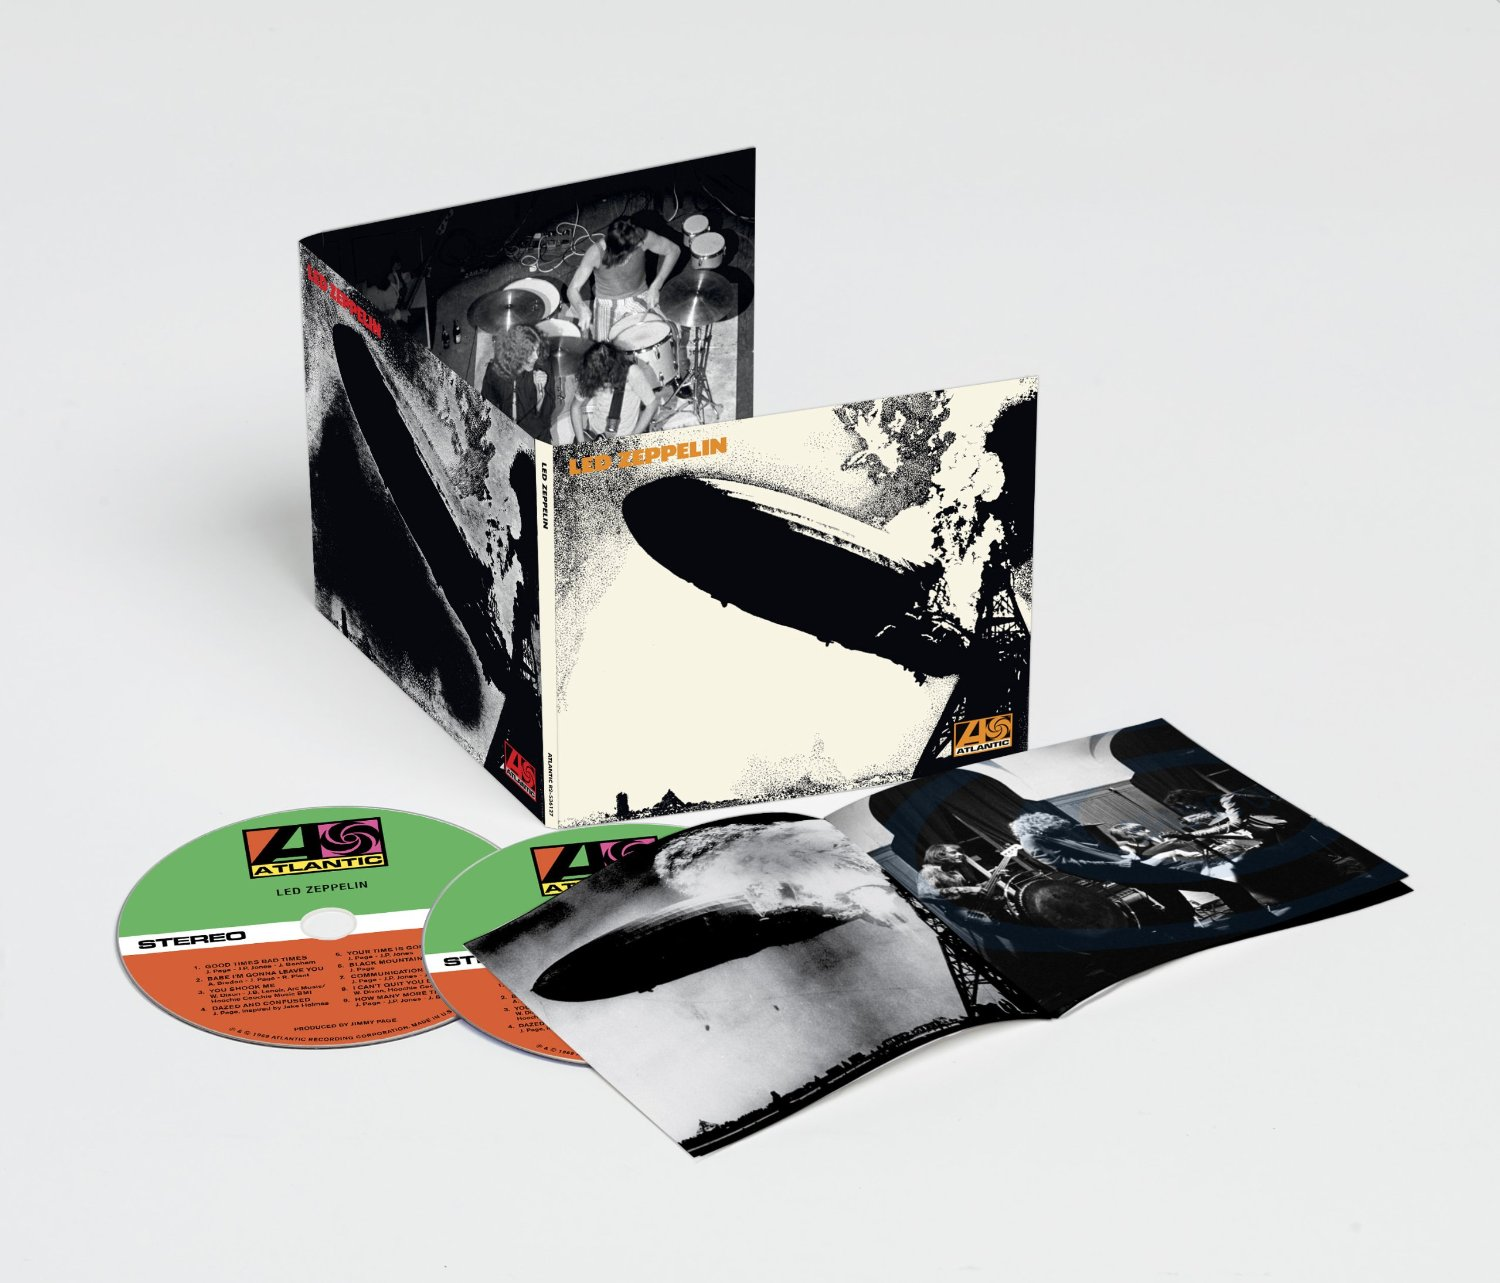 Led Zeppelin 2014 reissues 2CD deluxe remaster